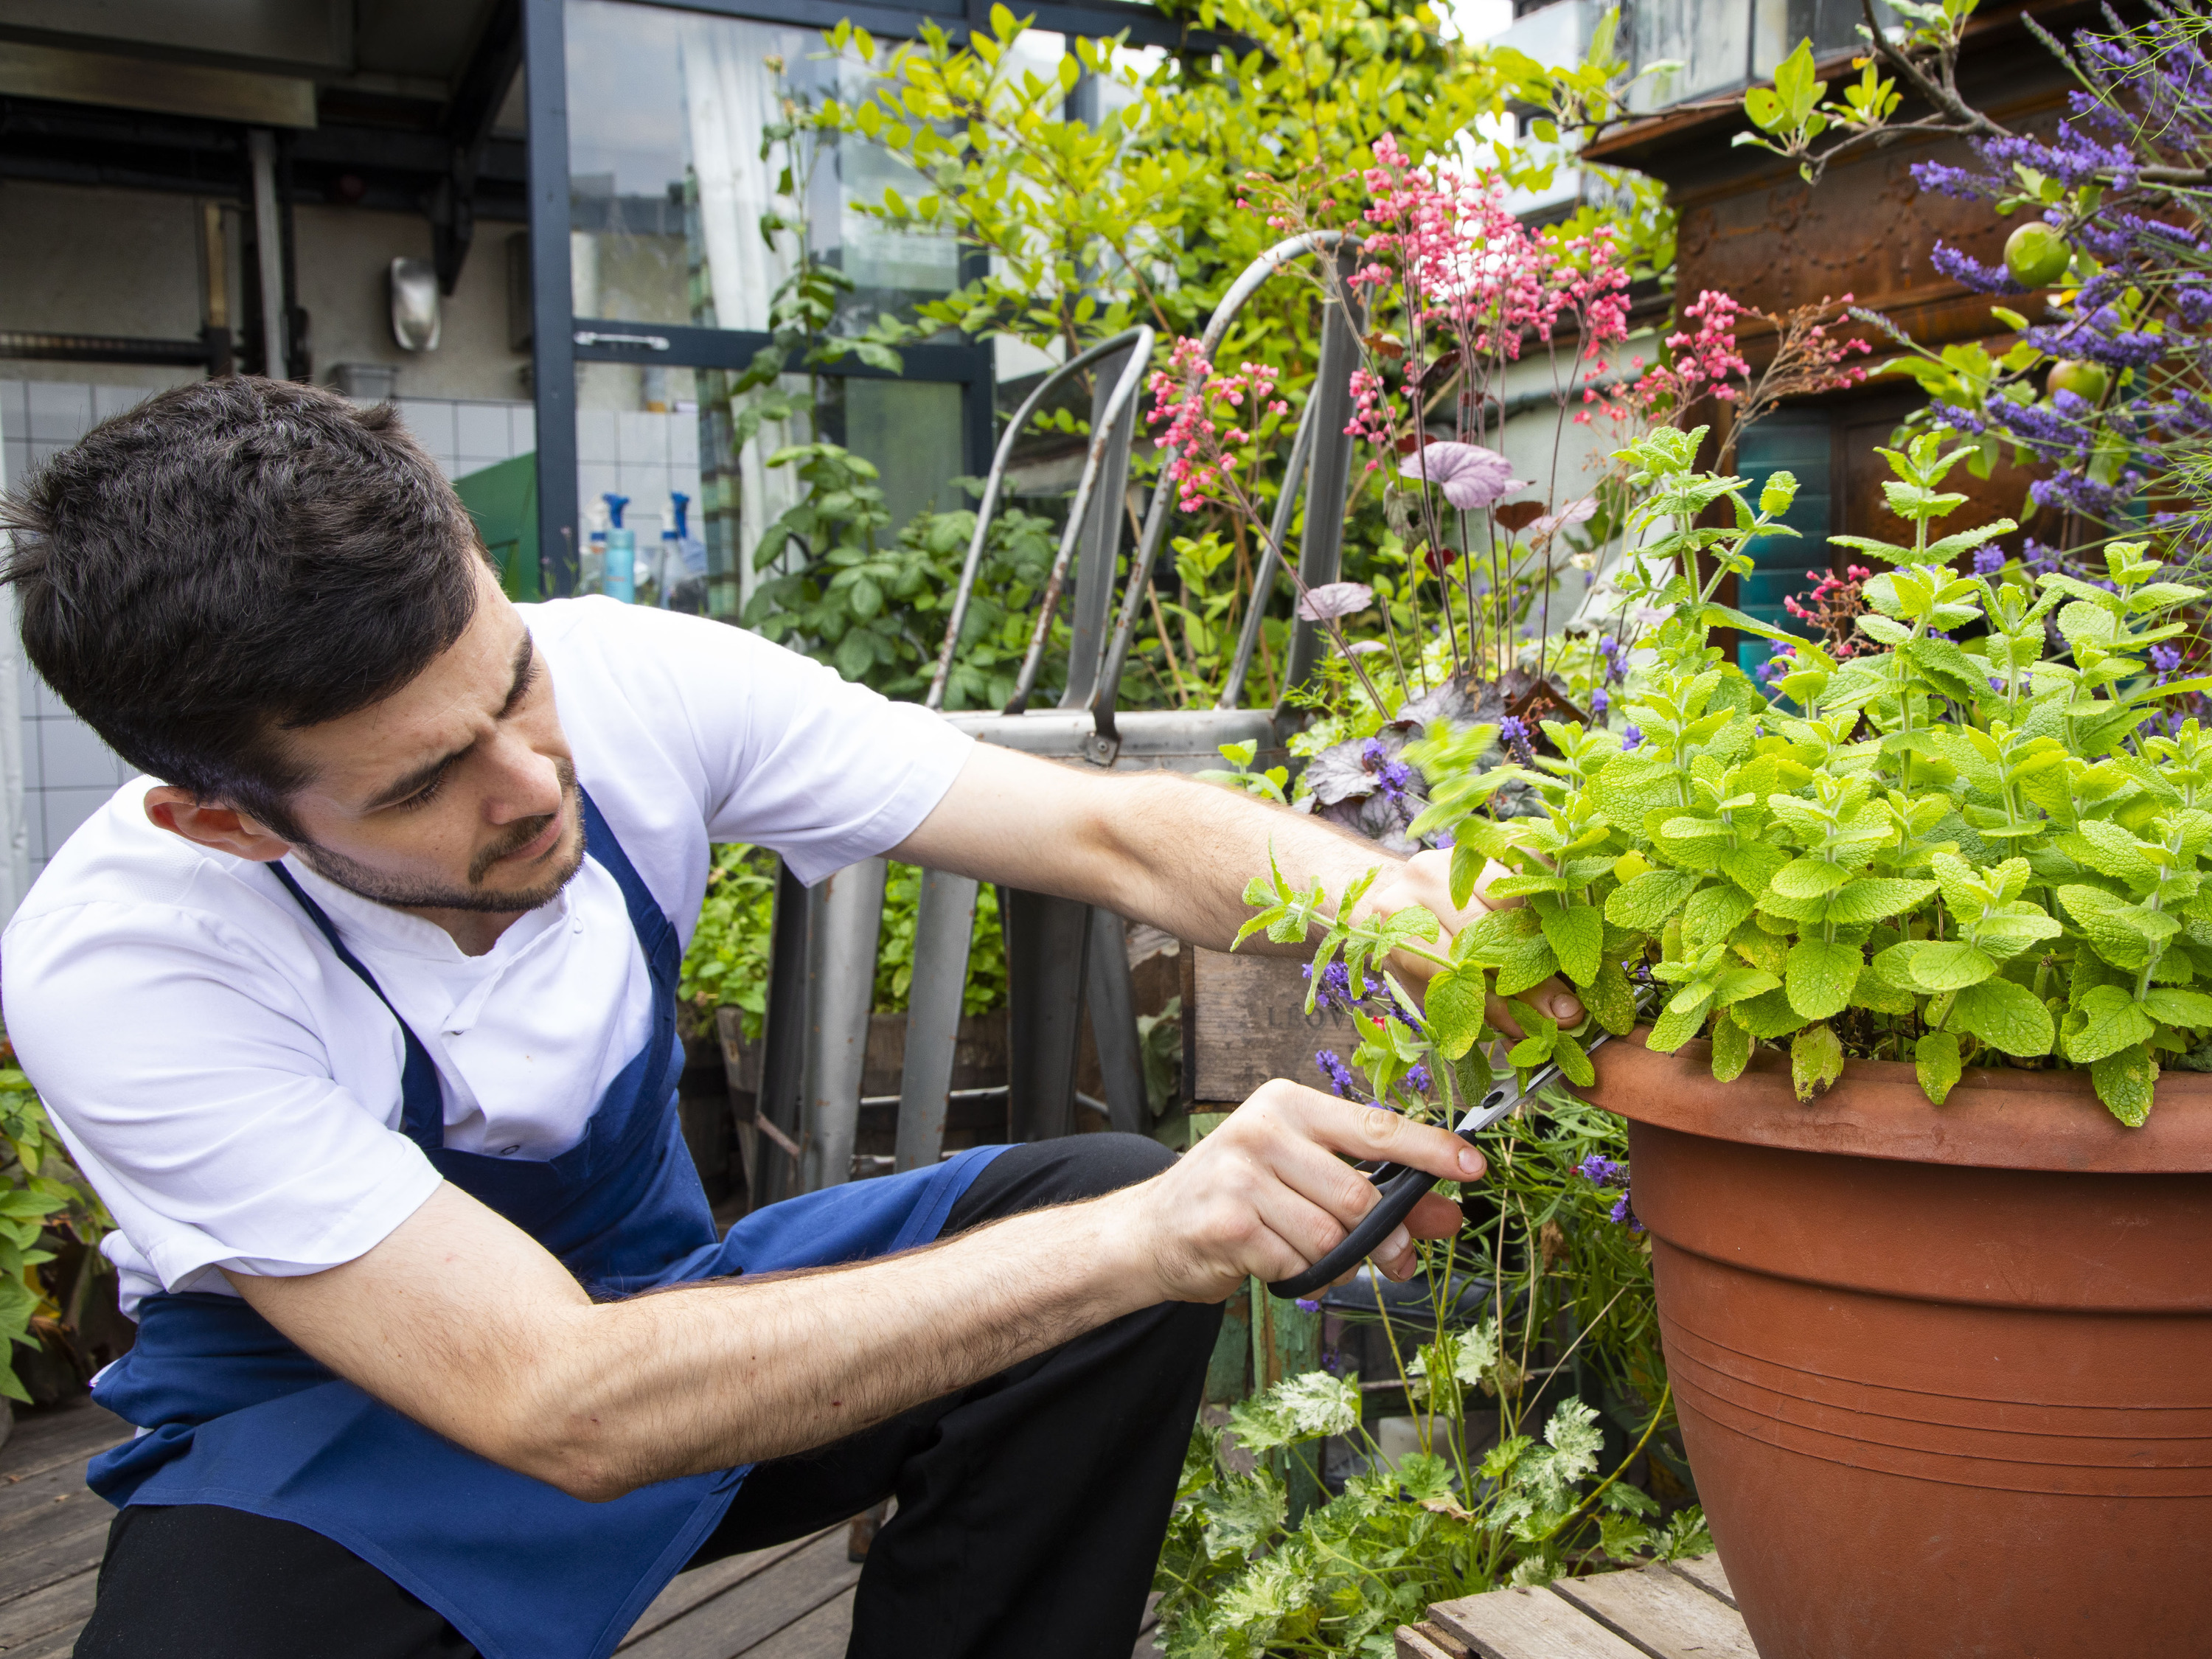 15 innovative restaurants and bars making London greener